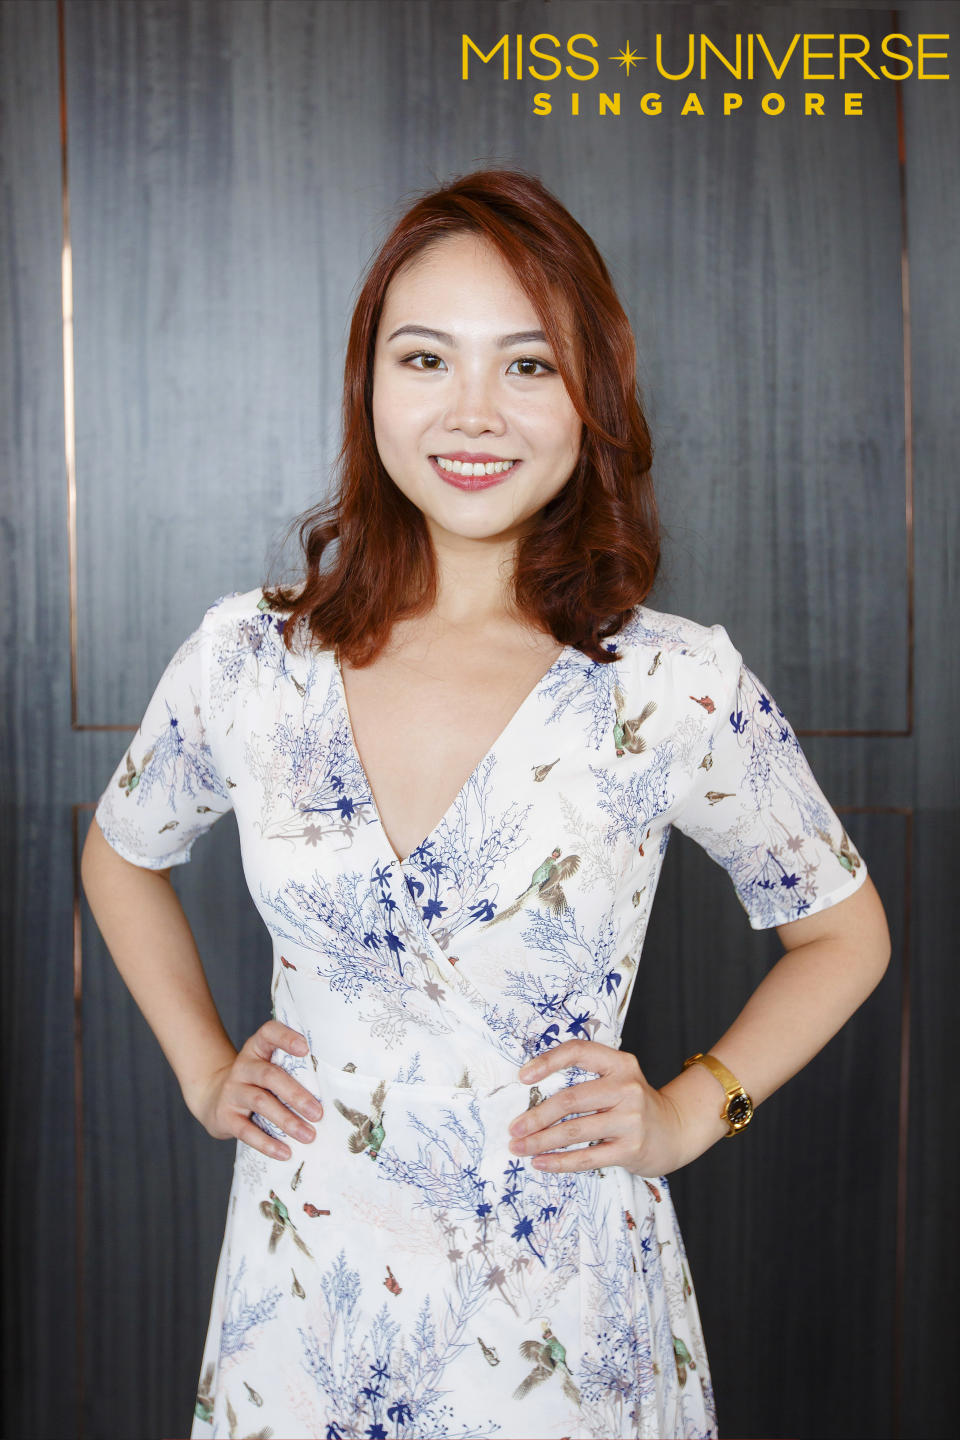 """Nerrine Ng is a Business Development Manager in the tourism industry and previously represented Singapore as Miss Asia Pacific Singapore 2018/2019. """"If I could have dinner with anyone dead or alive, it would be Steve Jobs. He was a visionary man who continues to fascinate the business and creative world even after death. I would love to meet him to glean his biggest takeaways in life."""""""